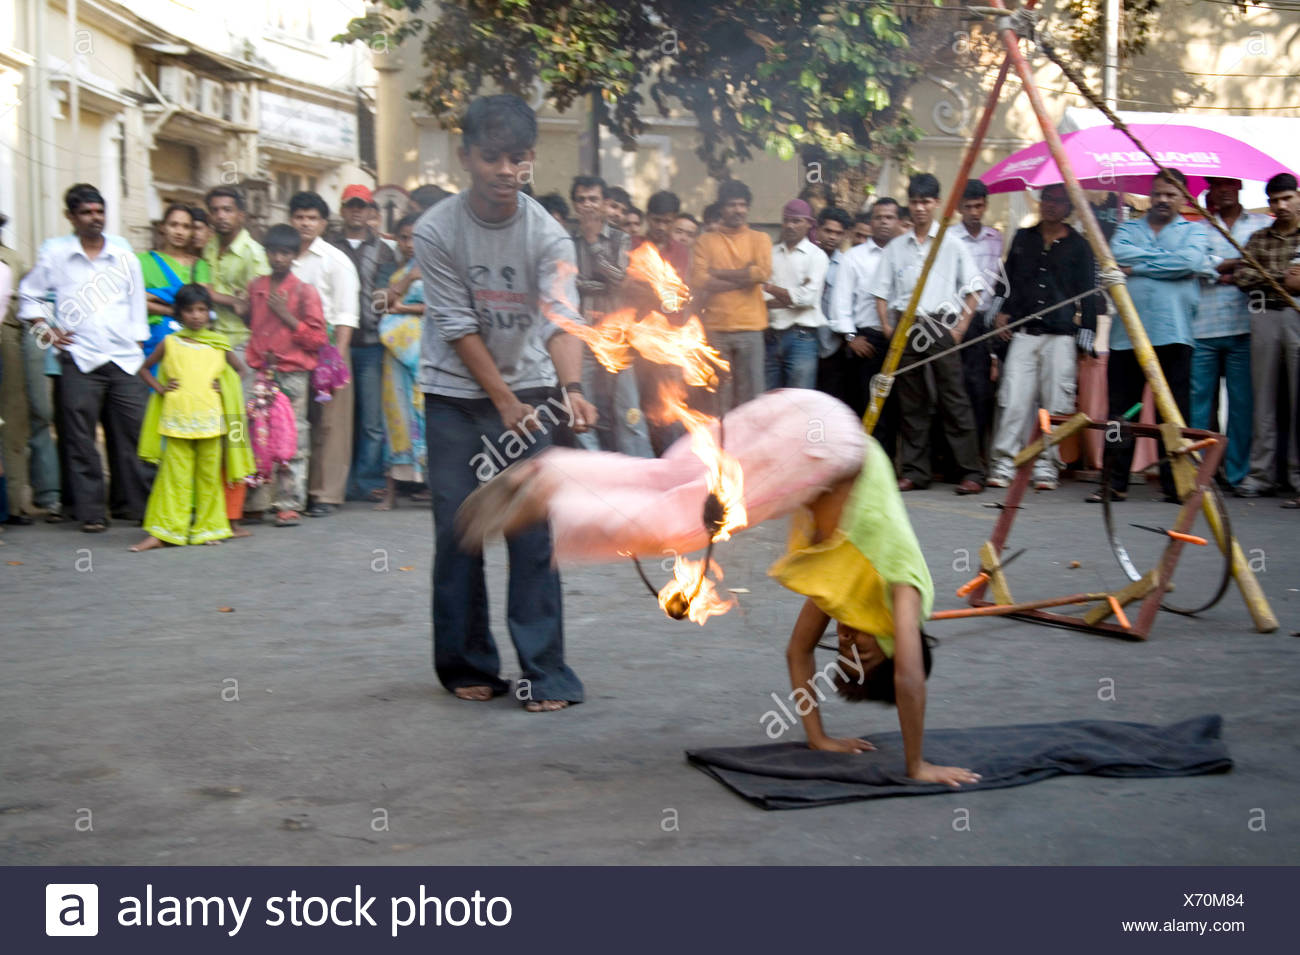 Boy jumping through iron ring, fire performance in Kala ghoda festival art fair ; Bombay Mumbai ; Maharashtra ; India - Stock Image